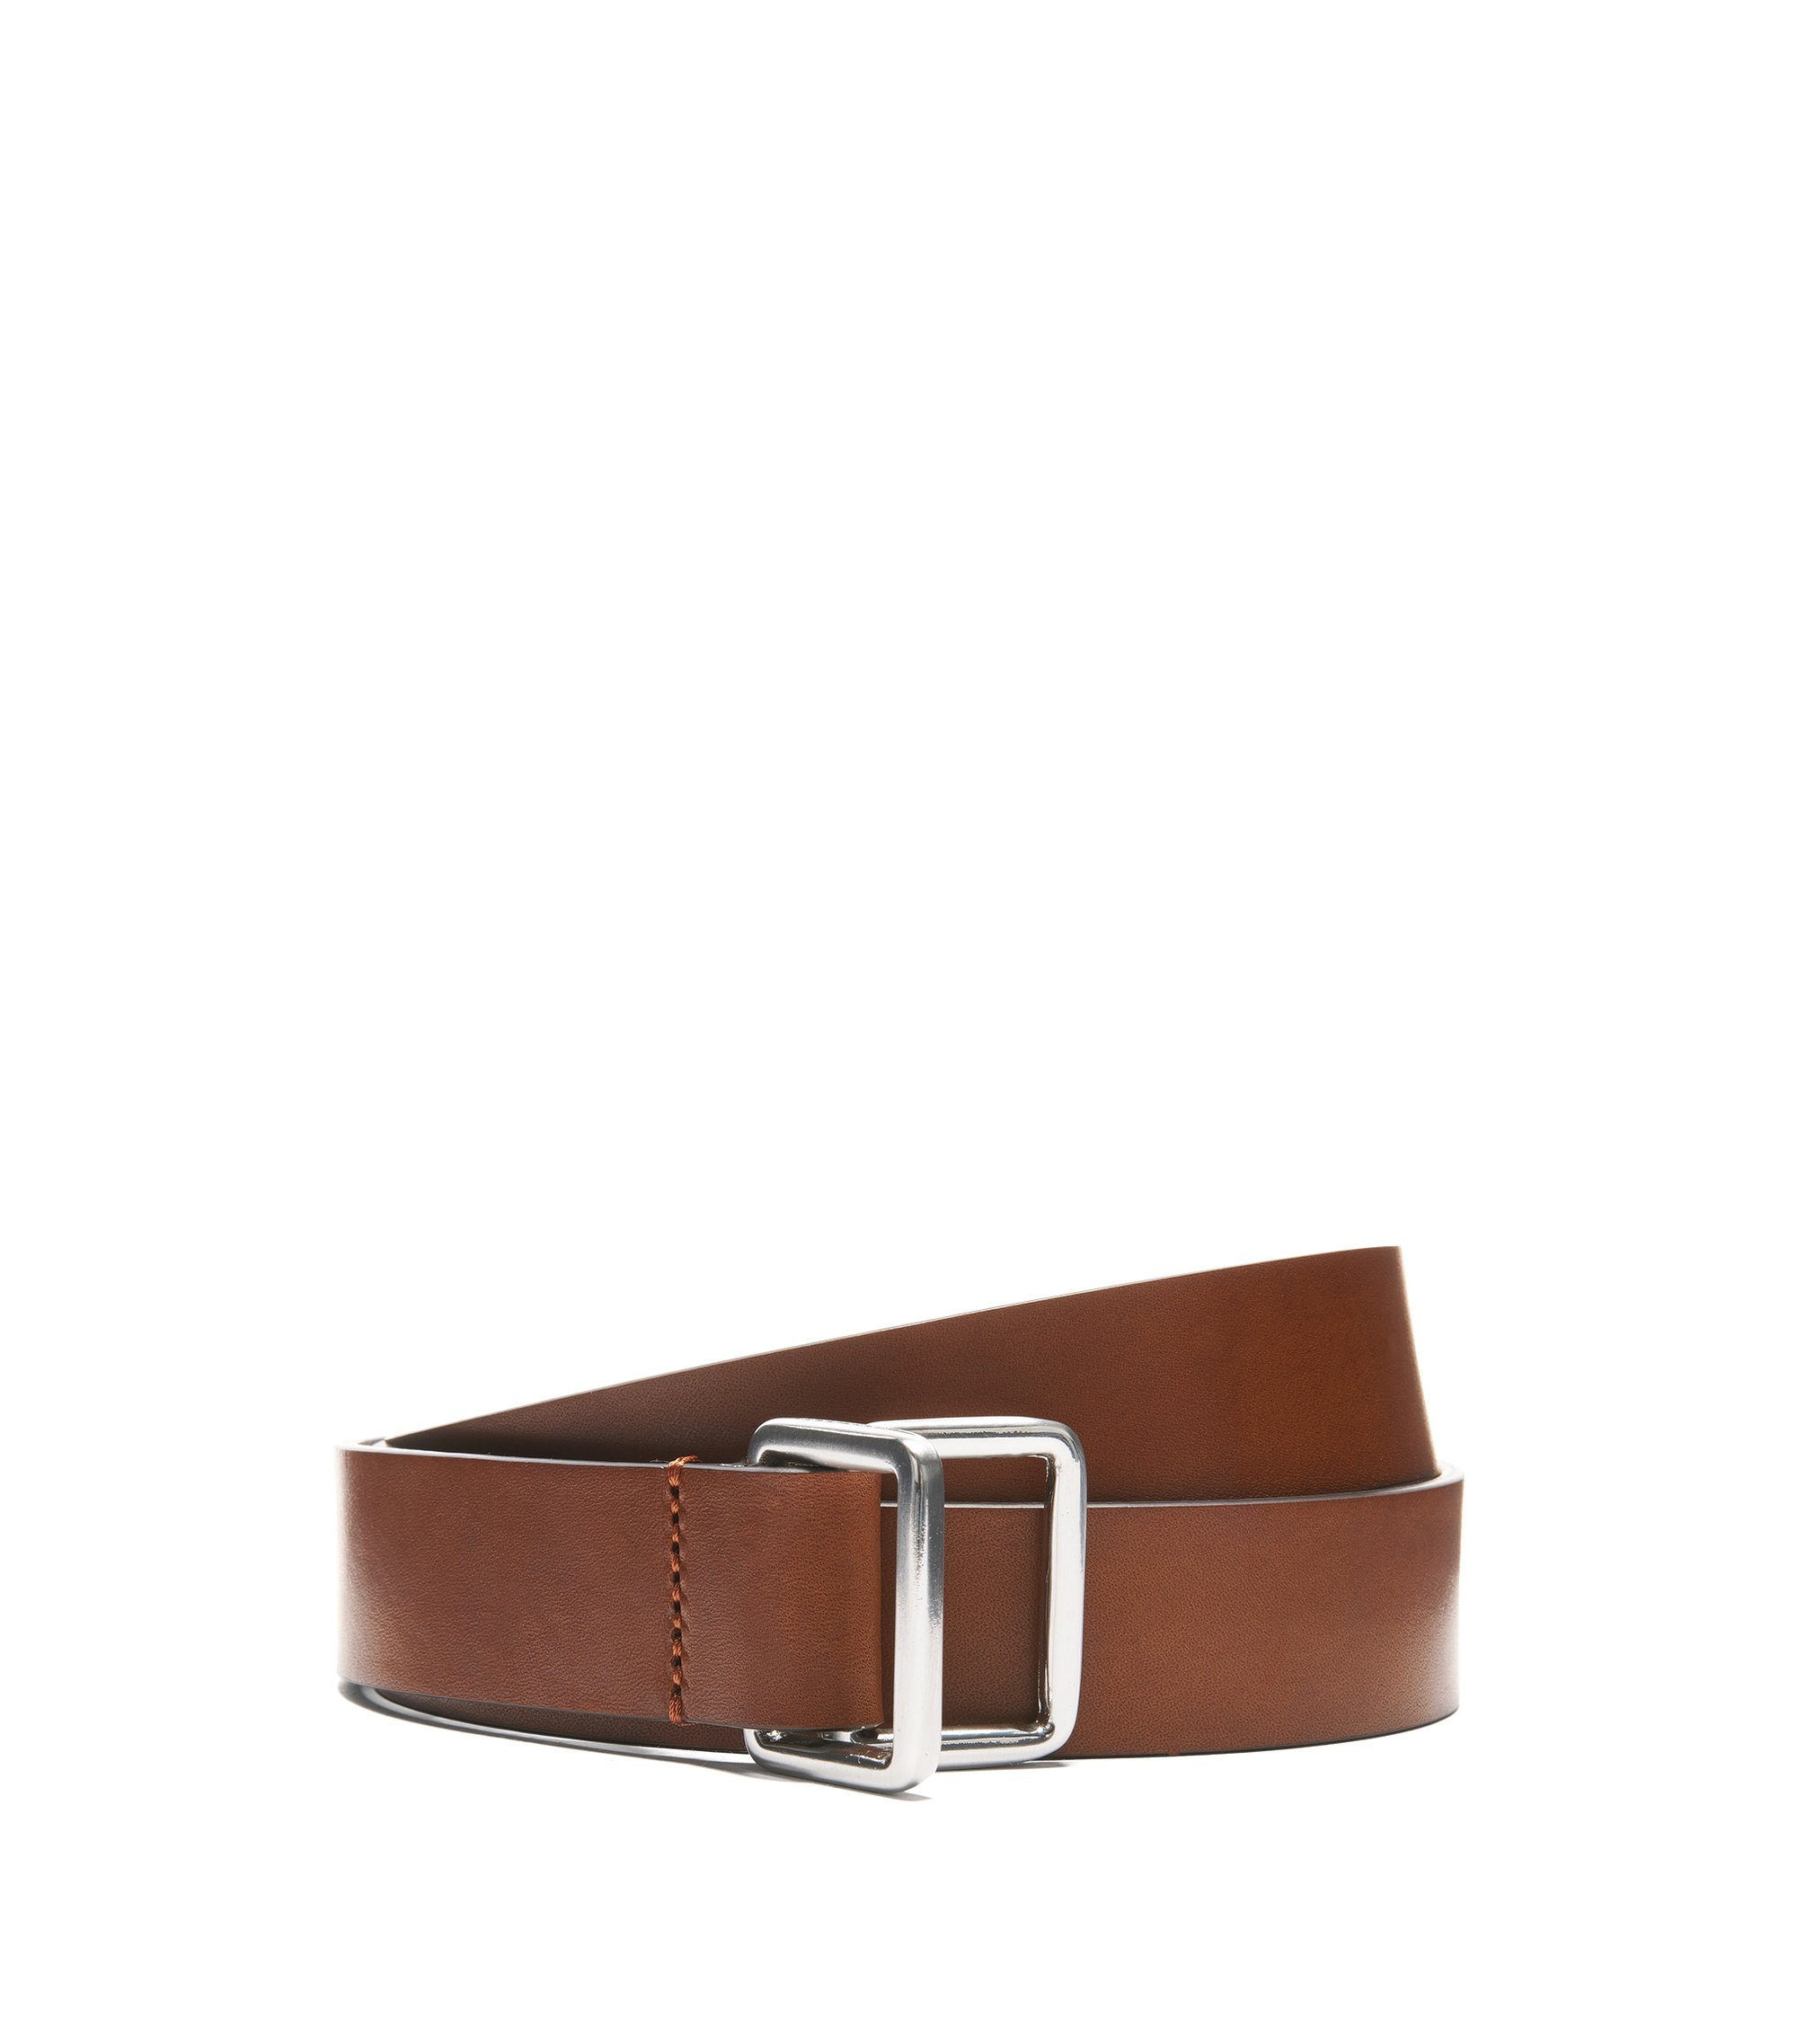 Smooth Italian-leather belt with double D-ring closure, Brown